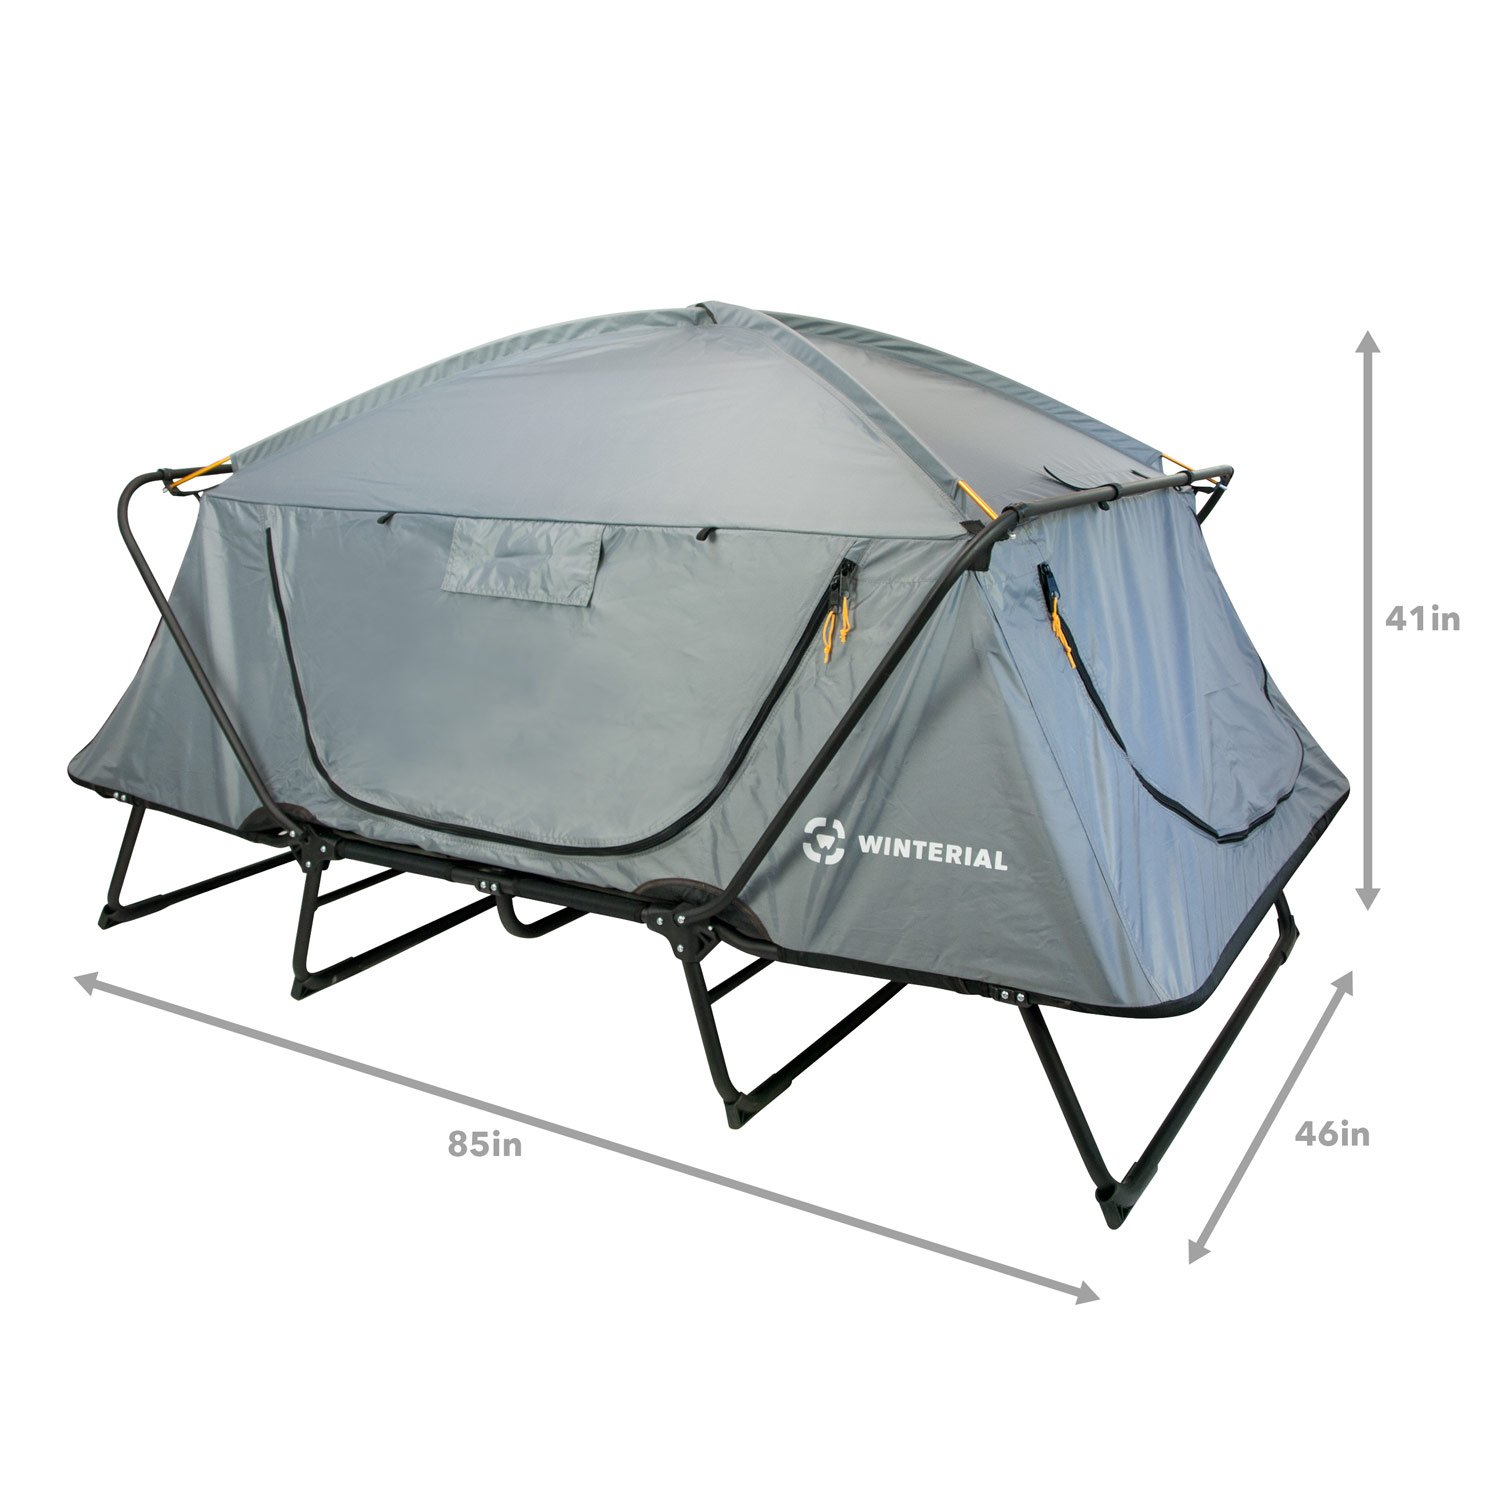 Winterial Double Outdoor Camping Tent Cot, Elevated Sleeping Platform with Collapsible Aluminum Frame by Winterial (Image #3)